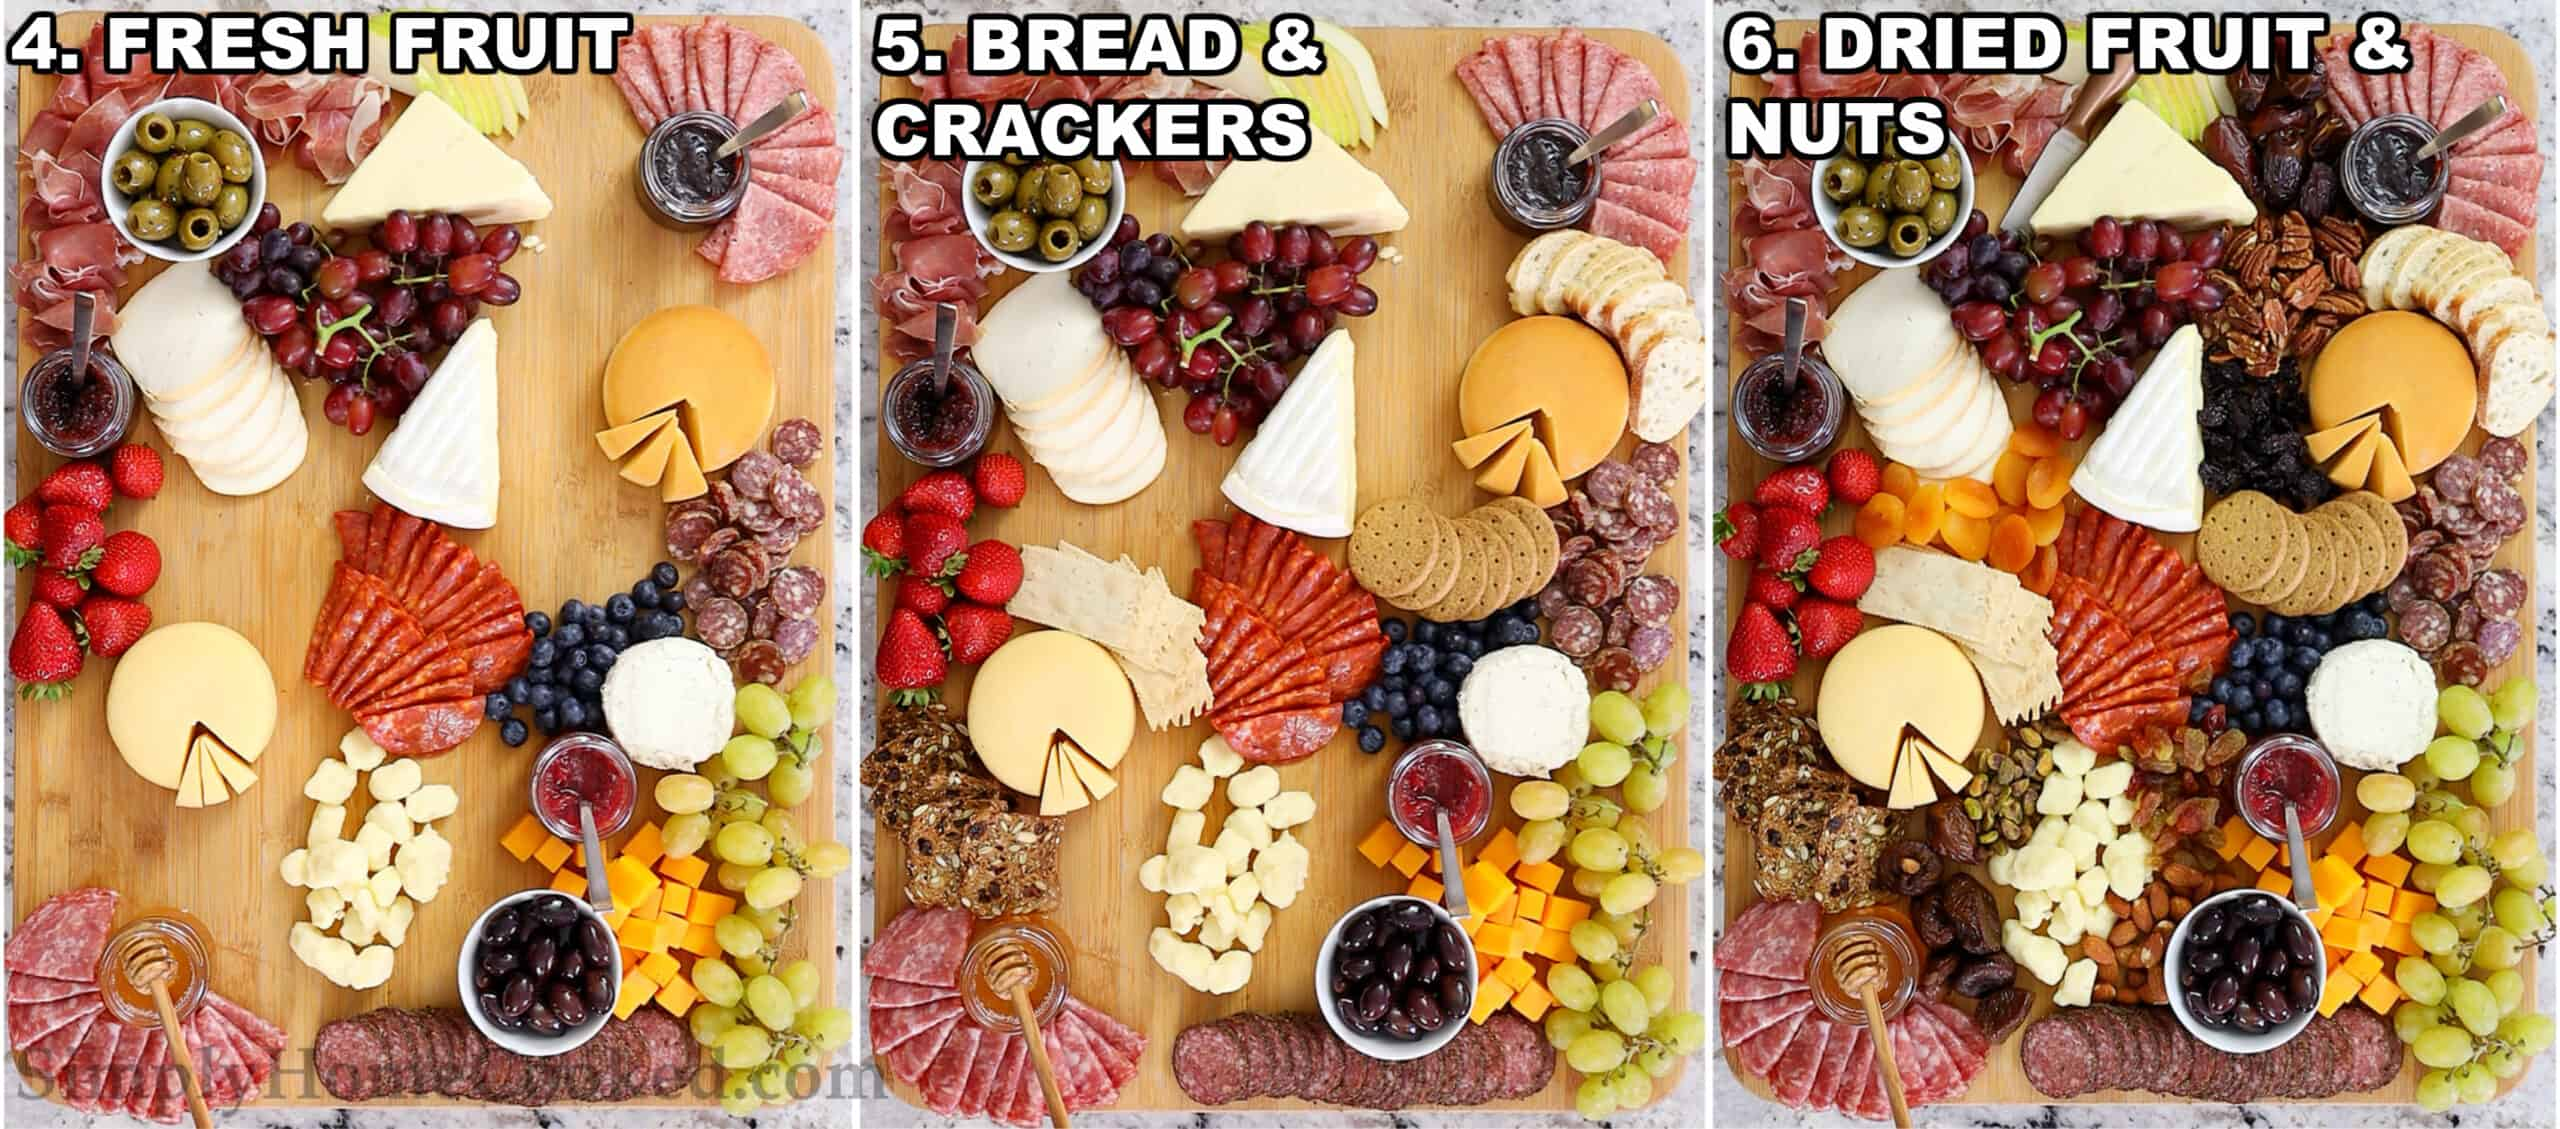 Steps to make the Ultimate Charcuterie Board, including assembling fresh fruit, breads and crackers, and dried fruits and nuts on a wooden board.